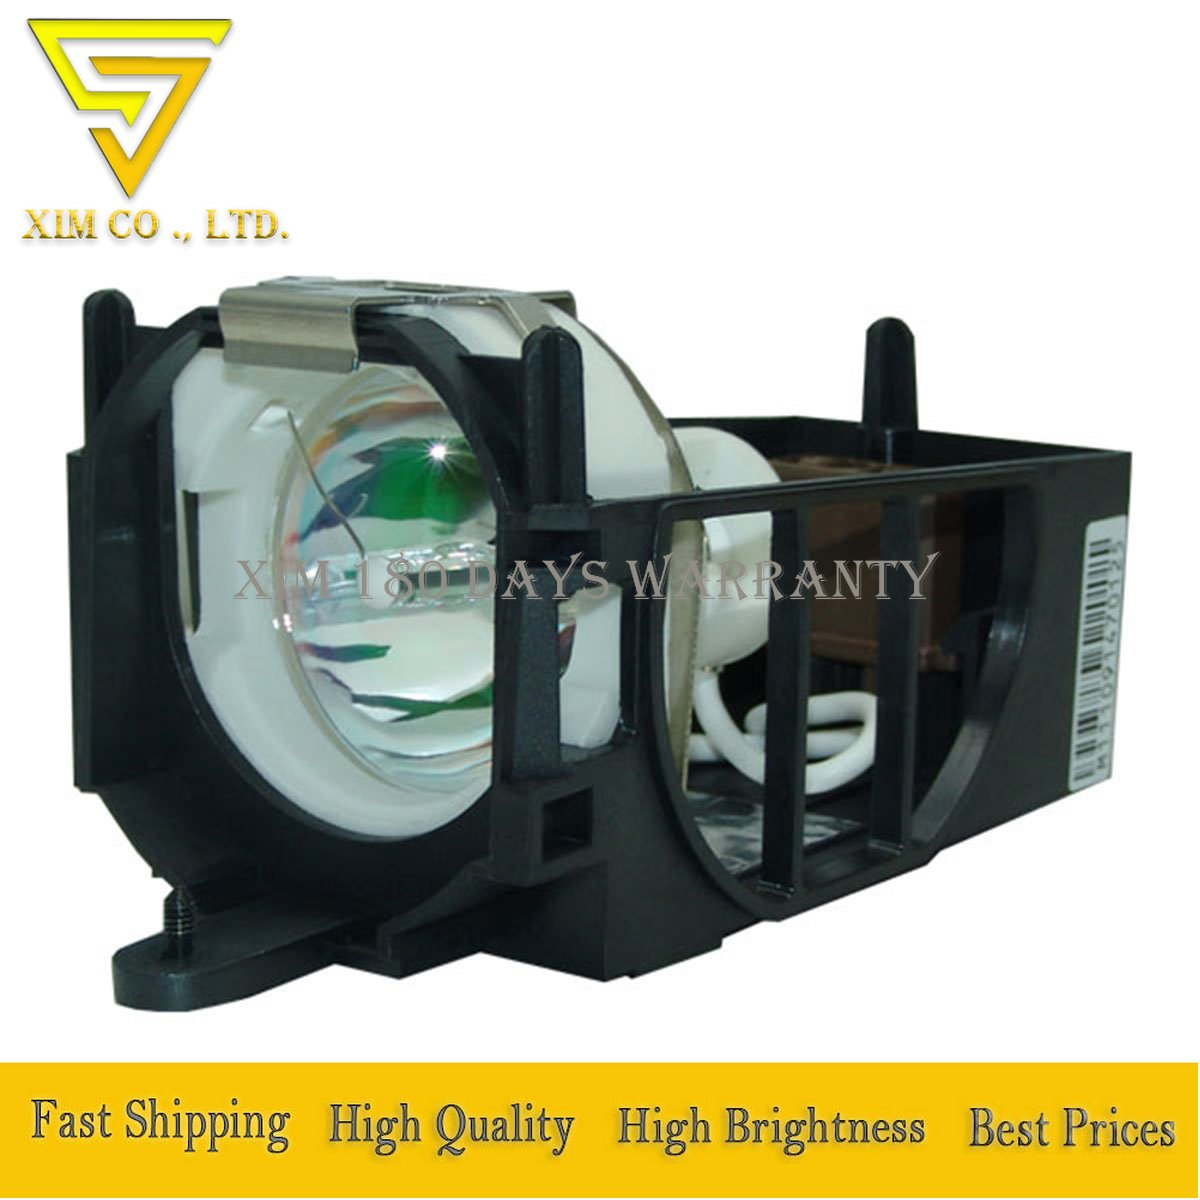 SP-LAMP-LP3E/SP-LAMP-LP3F/456-216 Projector  Lamp with Housing for Boxlight LP350 InFocus LP340B  LP350G  LP340